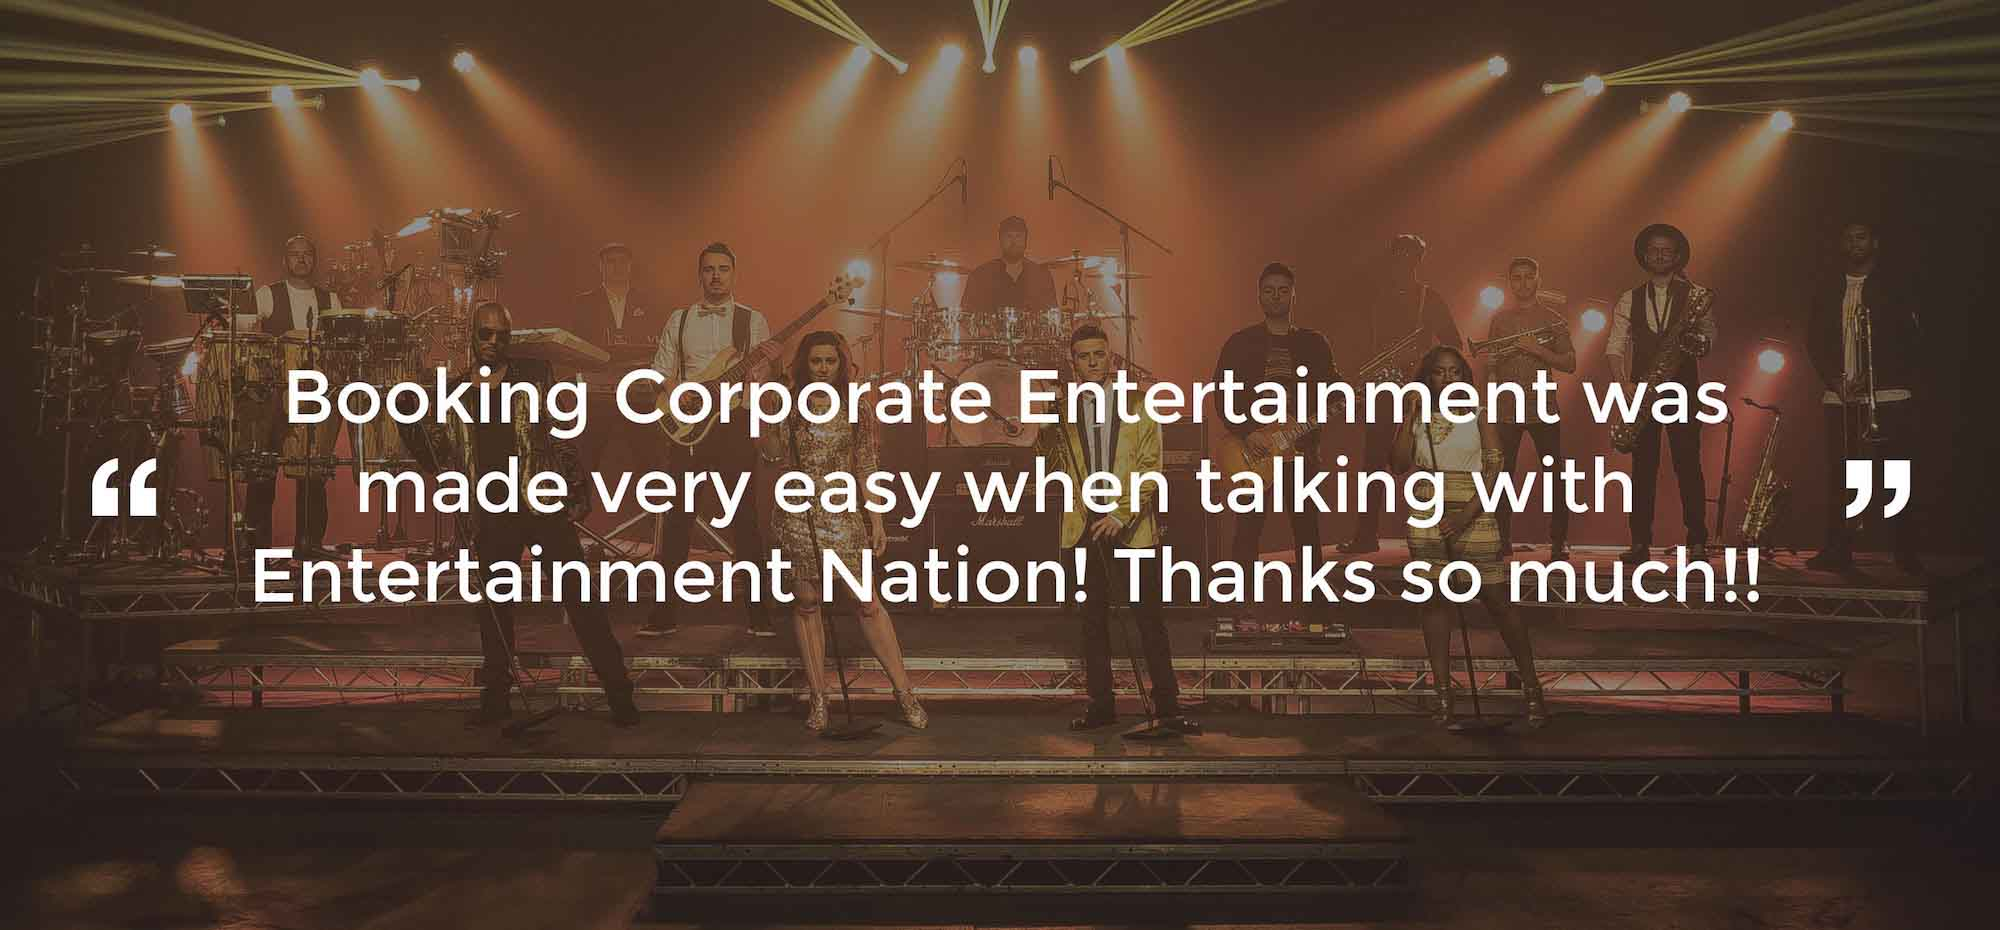 Client Review of Corporate Entertainment South Scotland